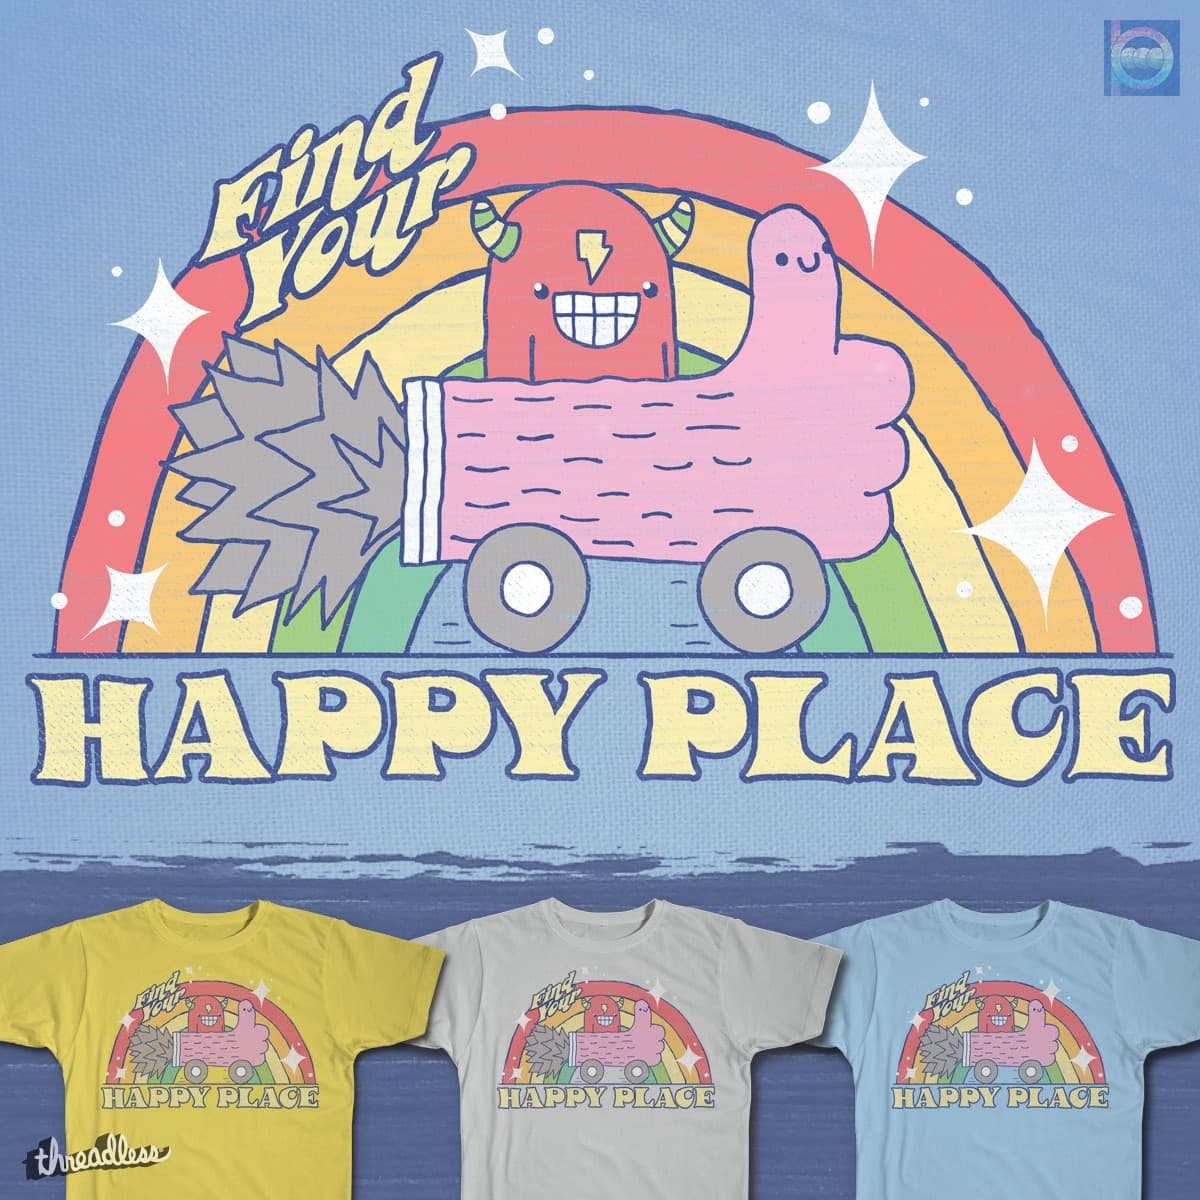 Score FIND YOUR HAPPY PLACE by BeanePod on Threadless